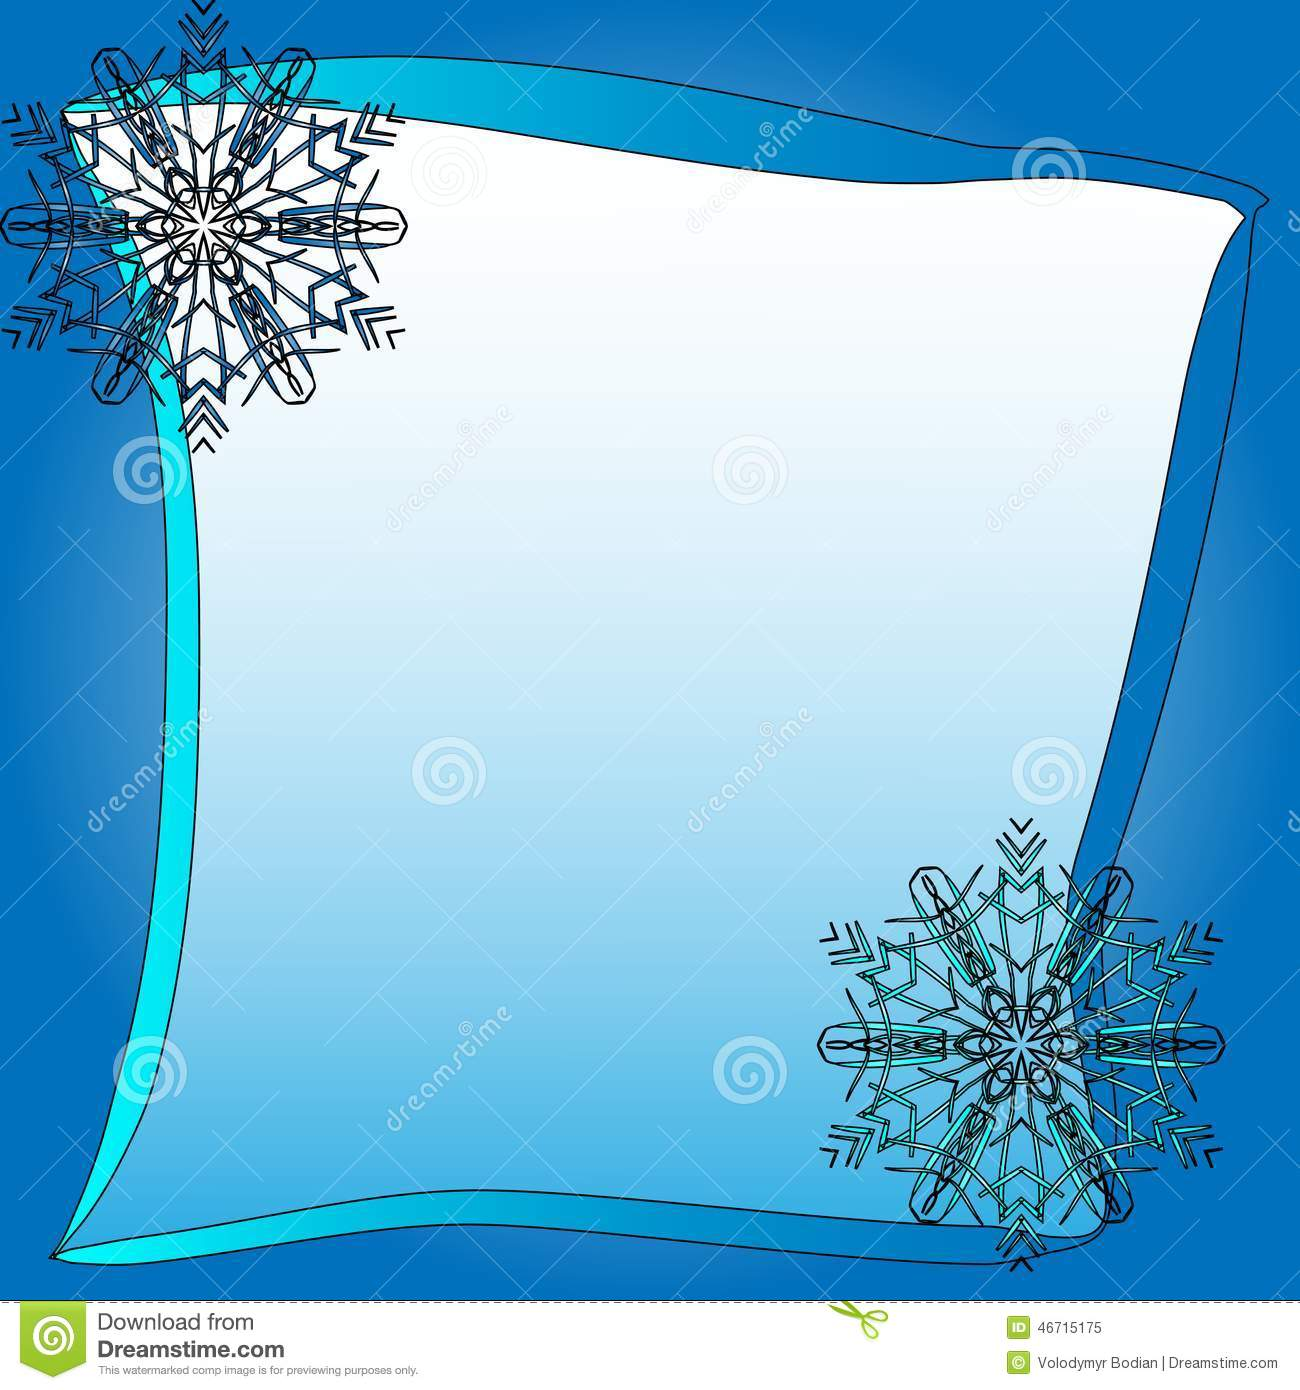 Frozen Square Frame With Blue Snowflakes Vector Illustration Stock ...